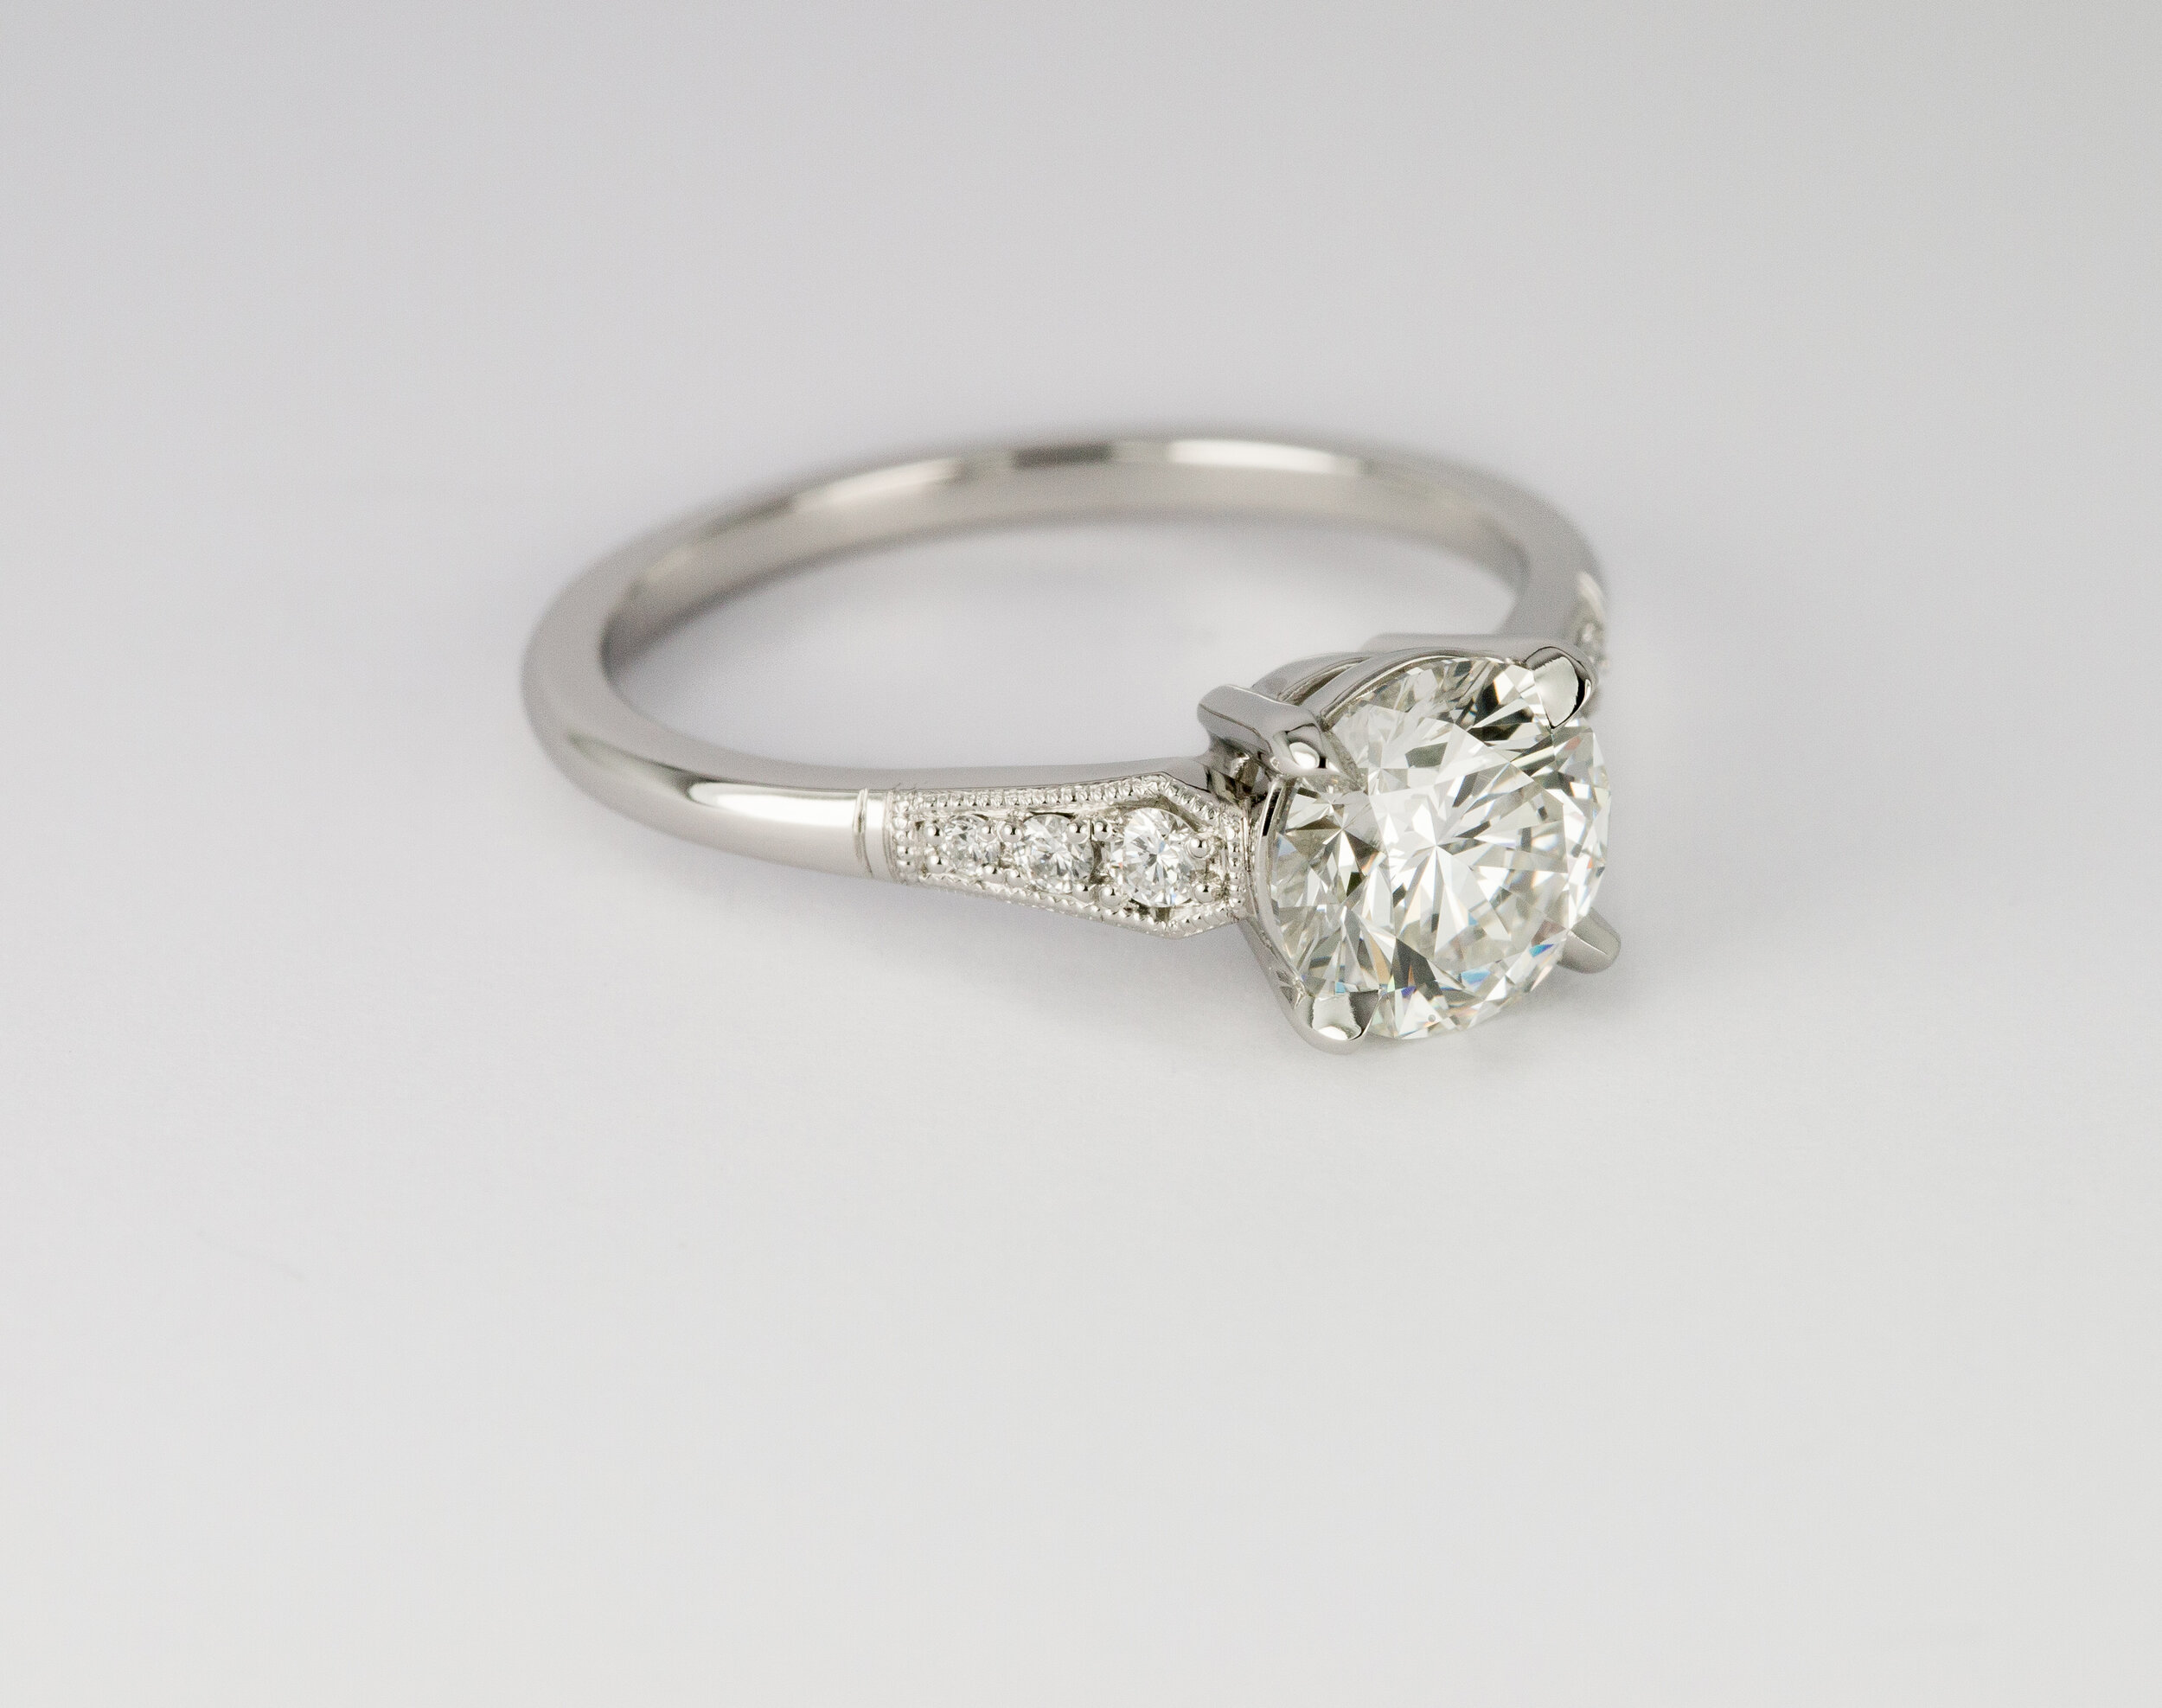 Platinum diamond engagement ring with millegrain detail.